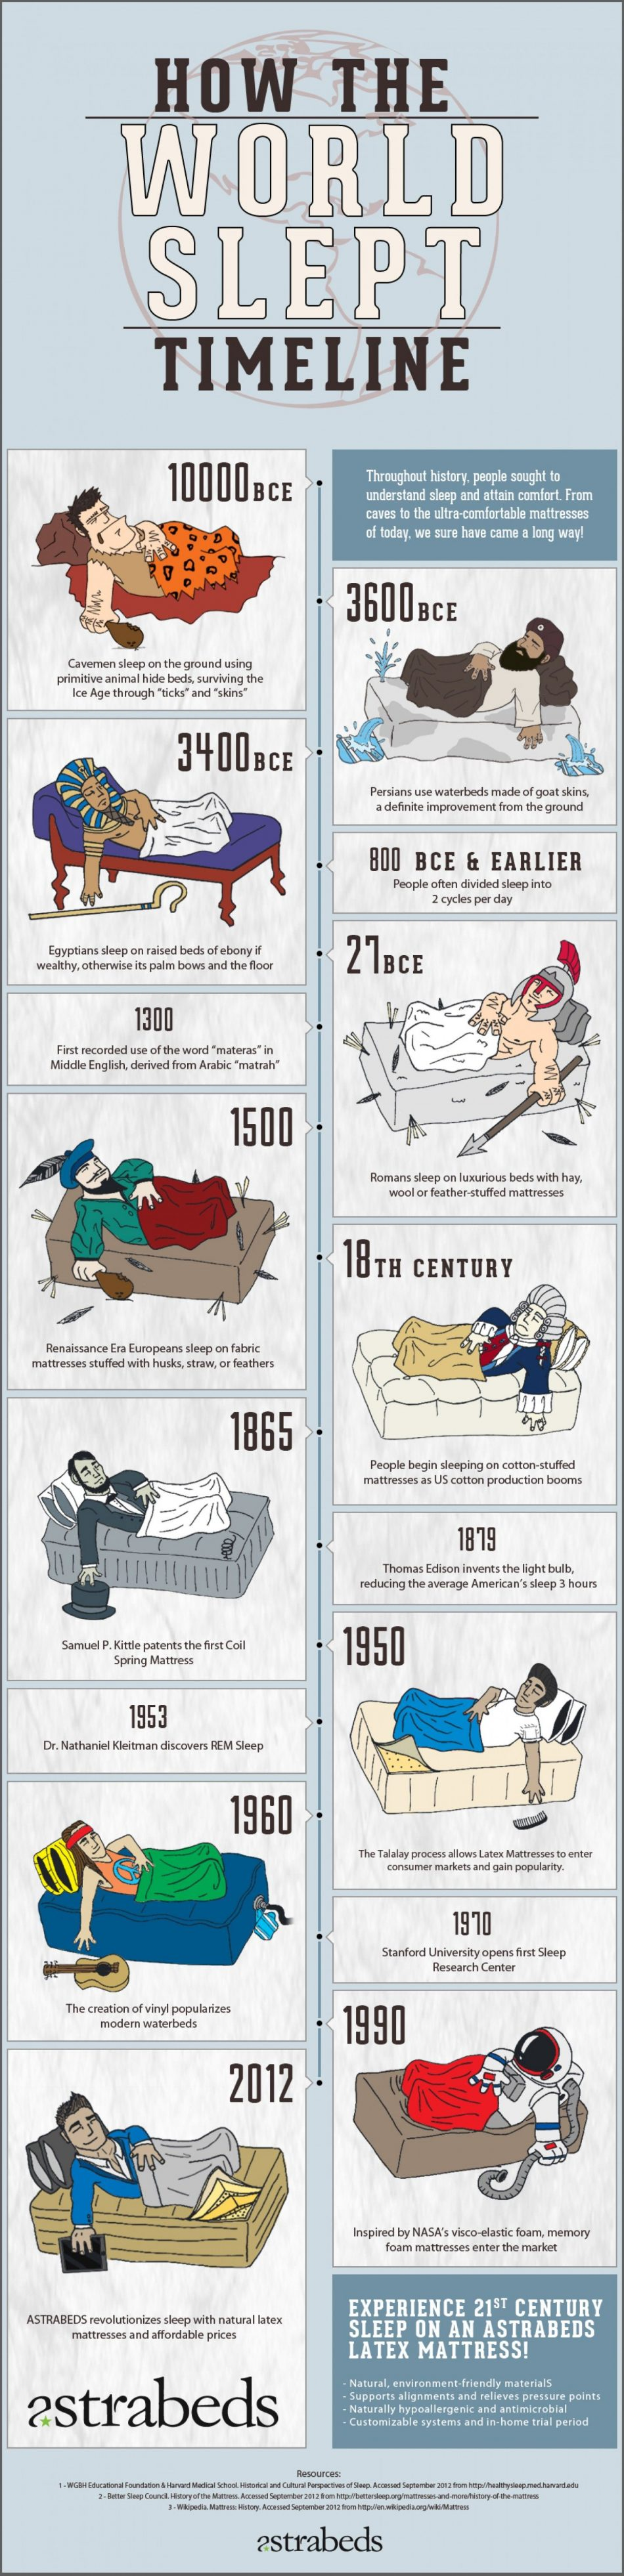 This information is pretty amazing. We've come a long way, and are still creating…...